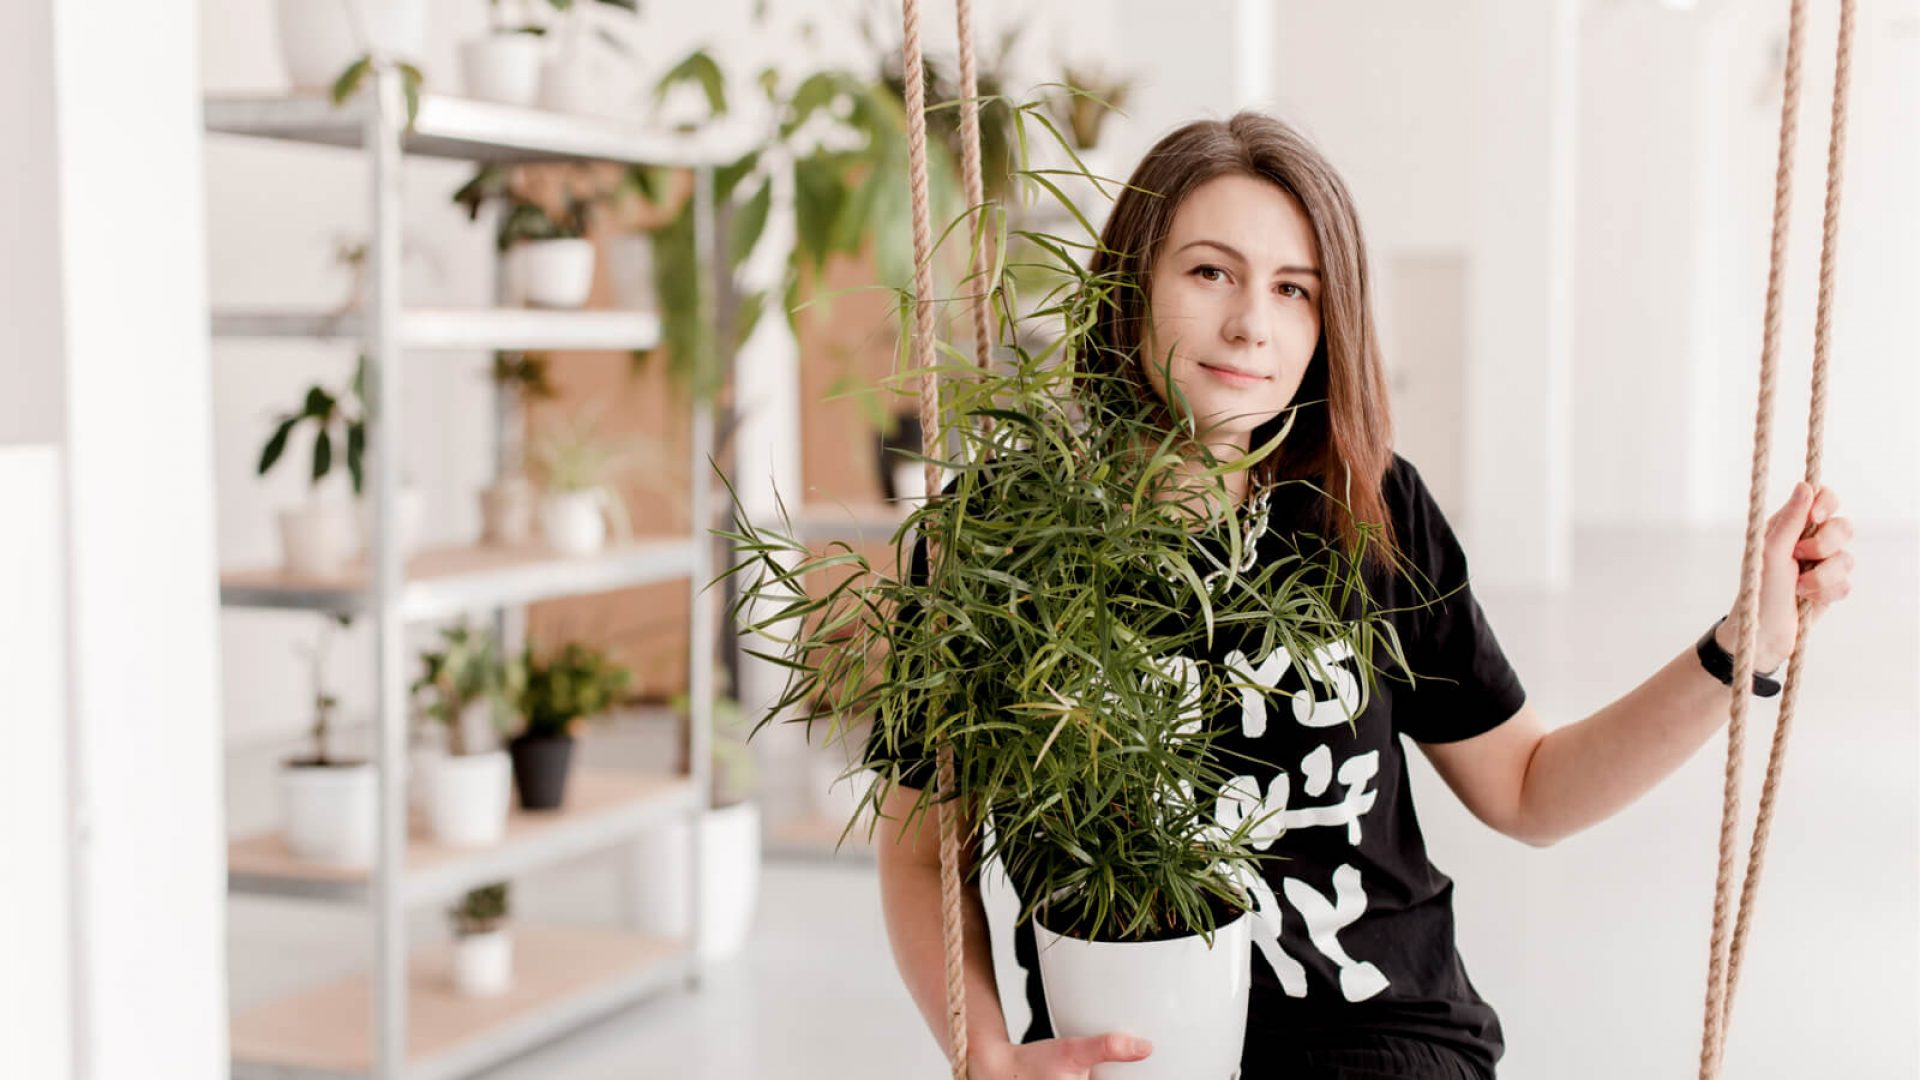 3 Benefits of Having Plants in Your Workspace: The Story of My Office Jungle